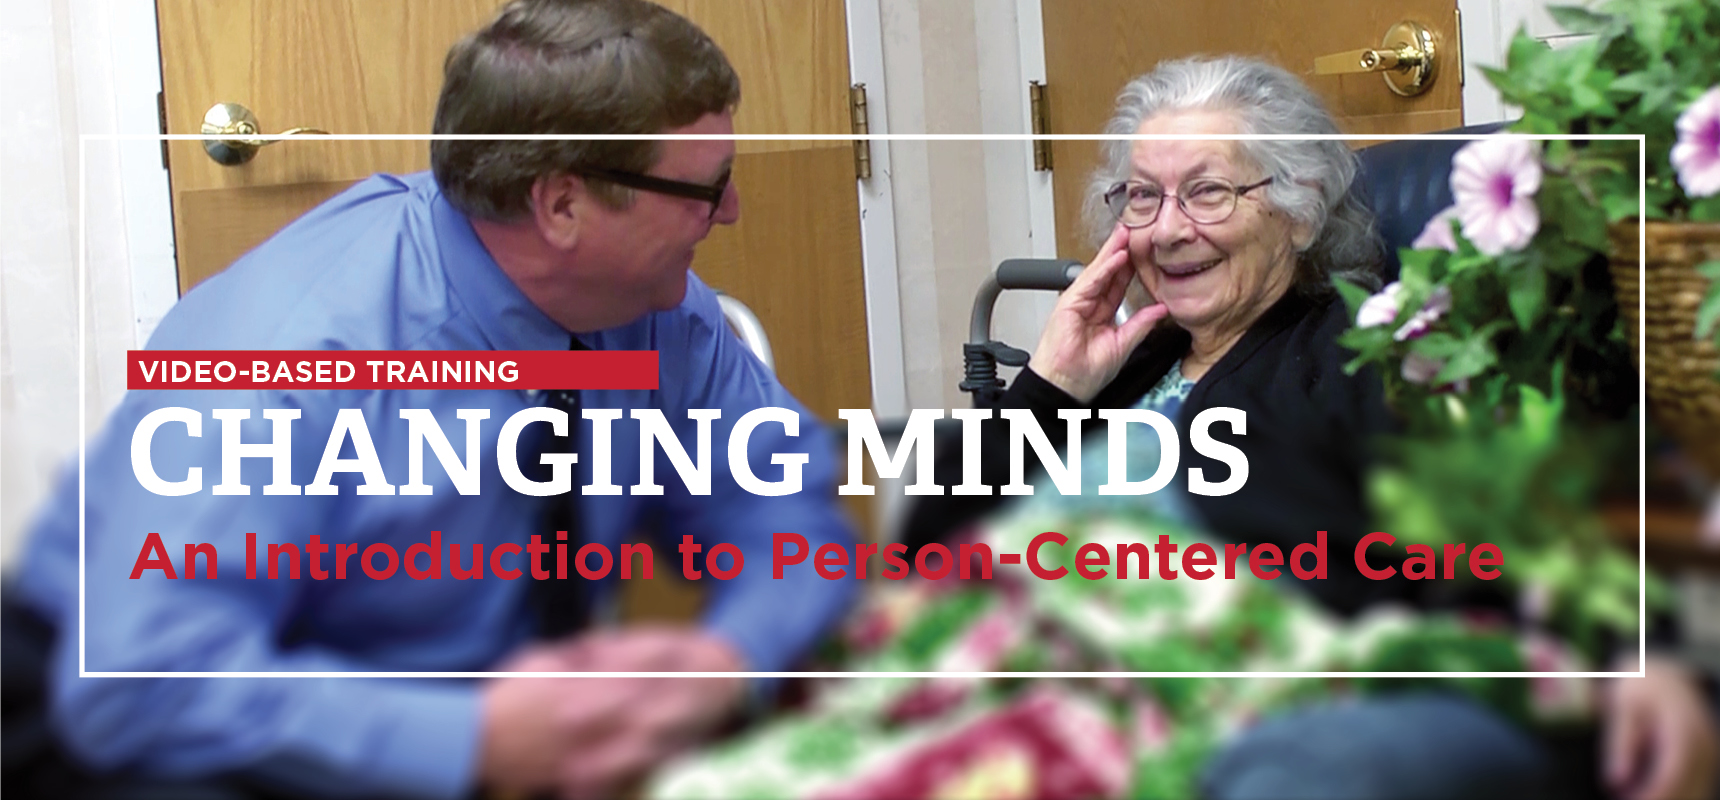 Video-based training Changing minds An Introduction to Person-Centered Care